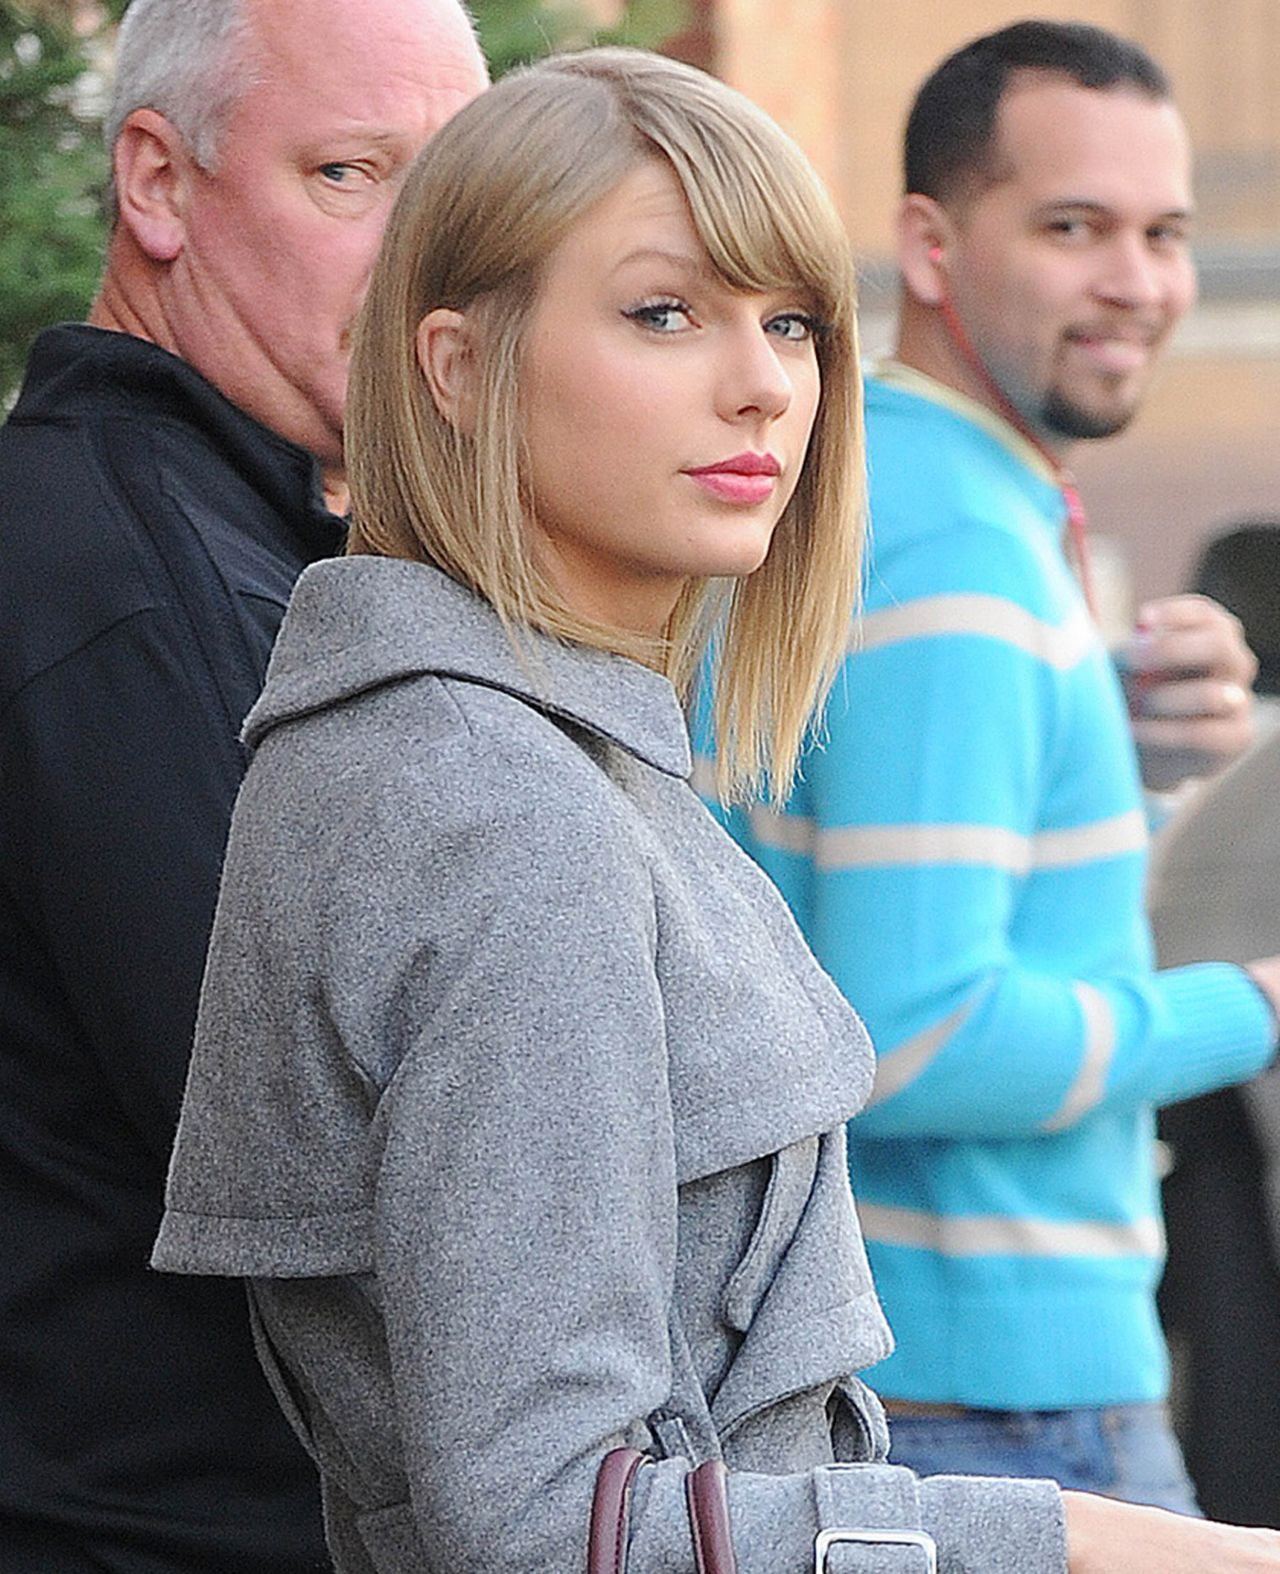 Taylor Swift Style - Leaving a Photo Studio in New York City - October 2014